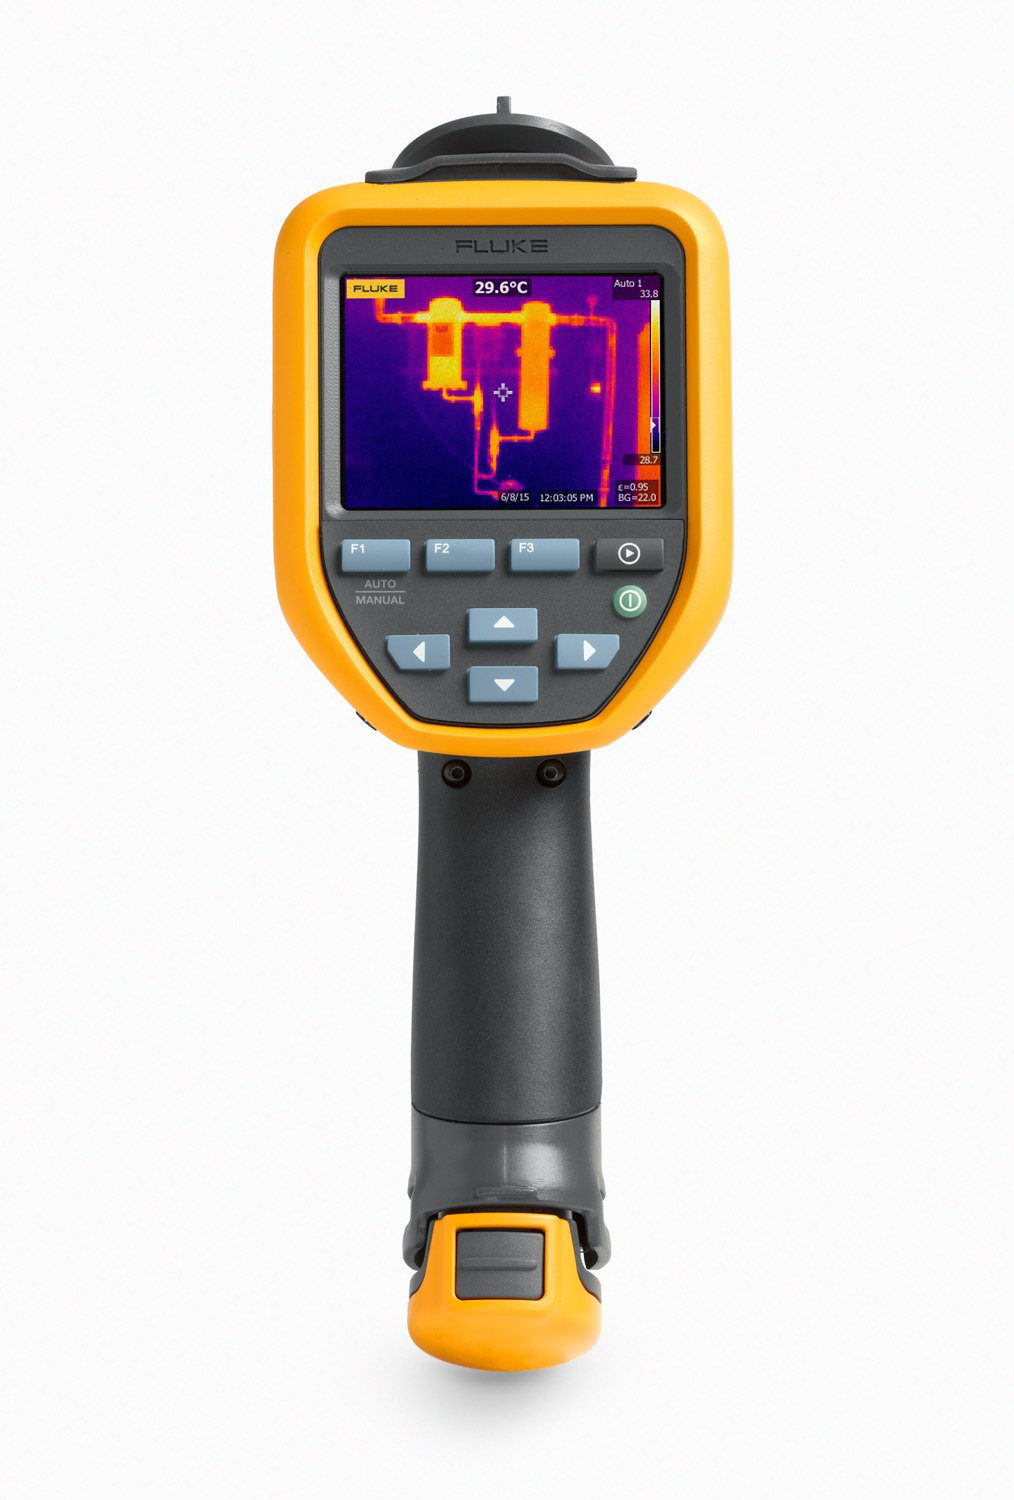 Fluke FLK-TIS50 9HZ Thermal Infrared Camera with IR-Fusion, Picture-in-Picture, Voice Annotations, Color Alarms, 3.5'' LCD, Fixed Focus, 220x165 Resolution